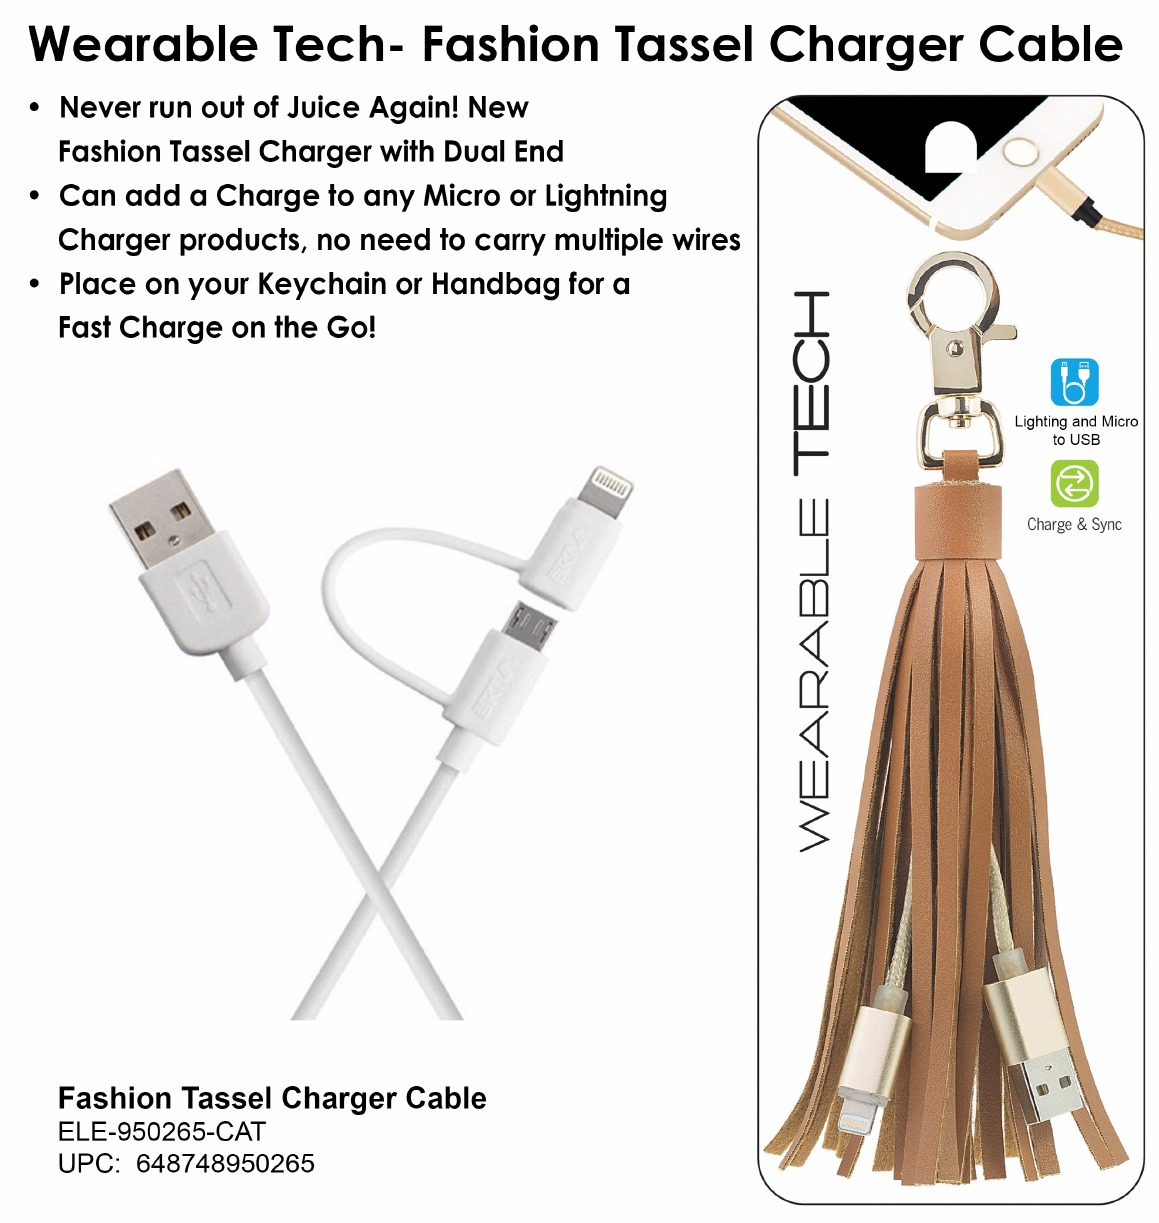 SNI Today - Wearable Tech- Fashion Tassel Charger Cable_edited